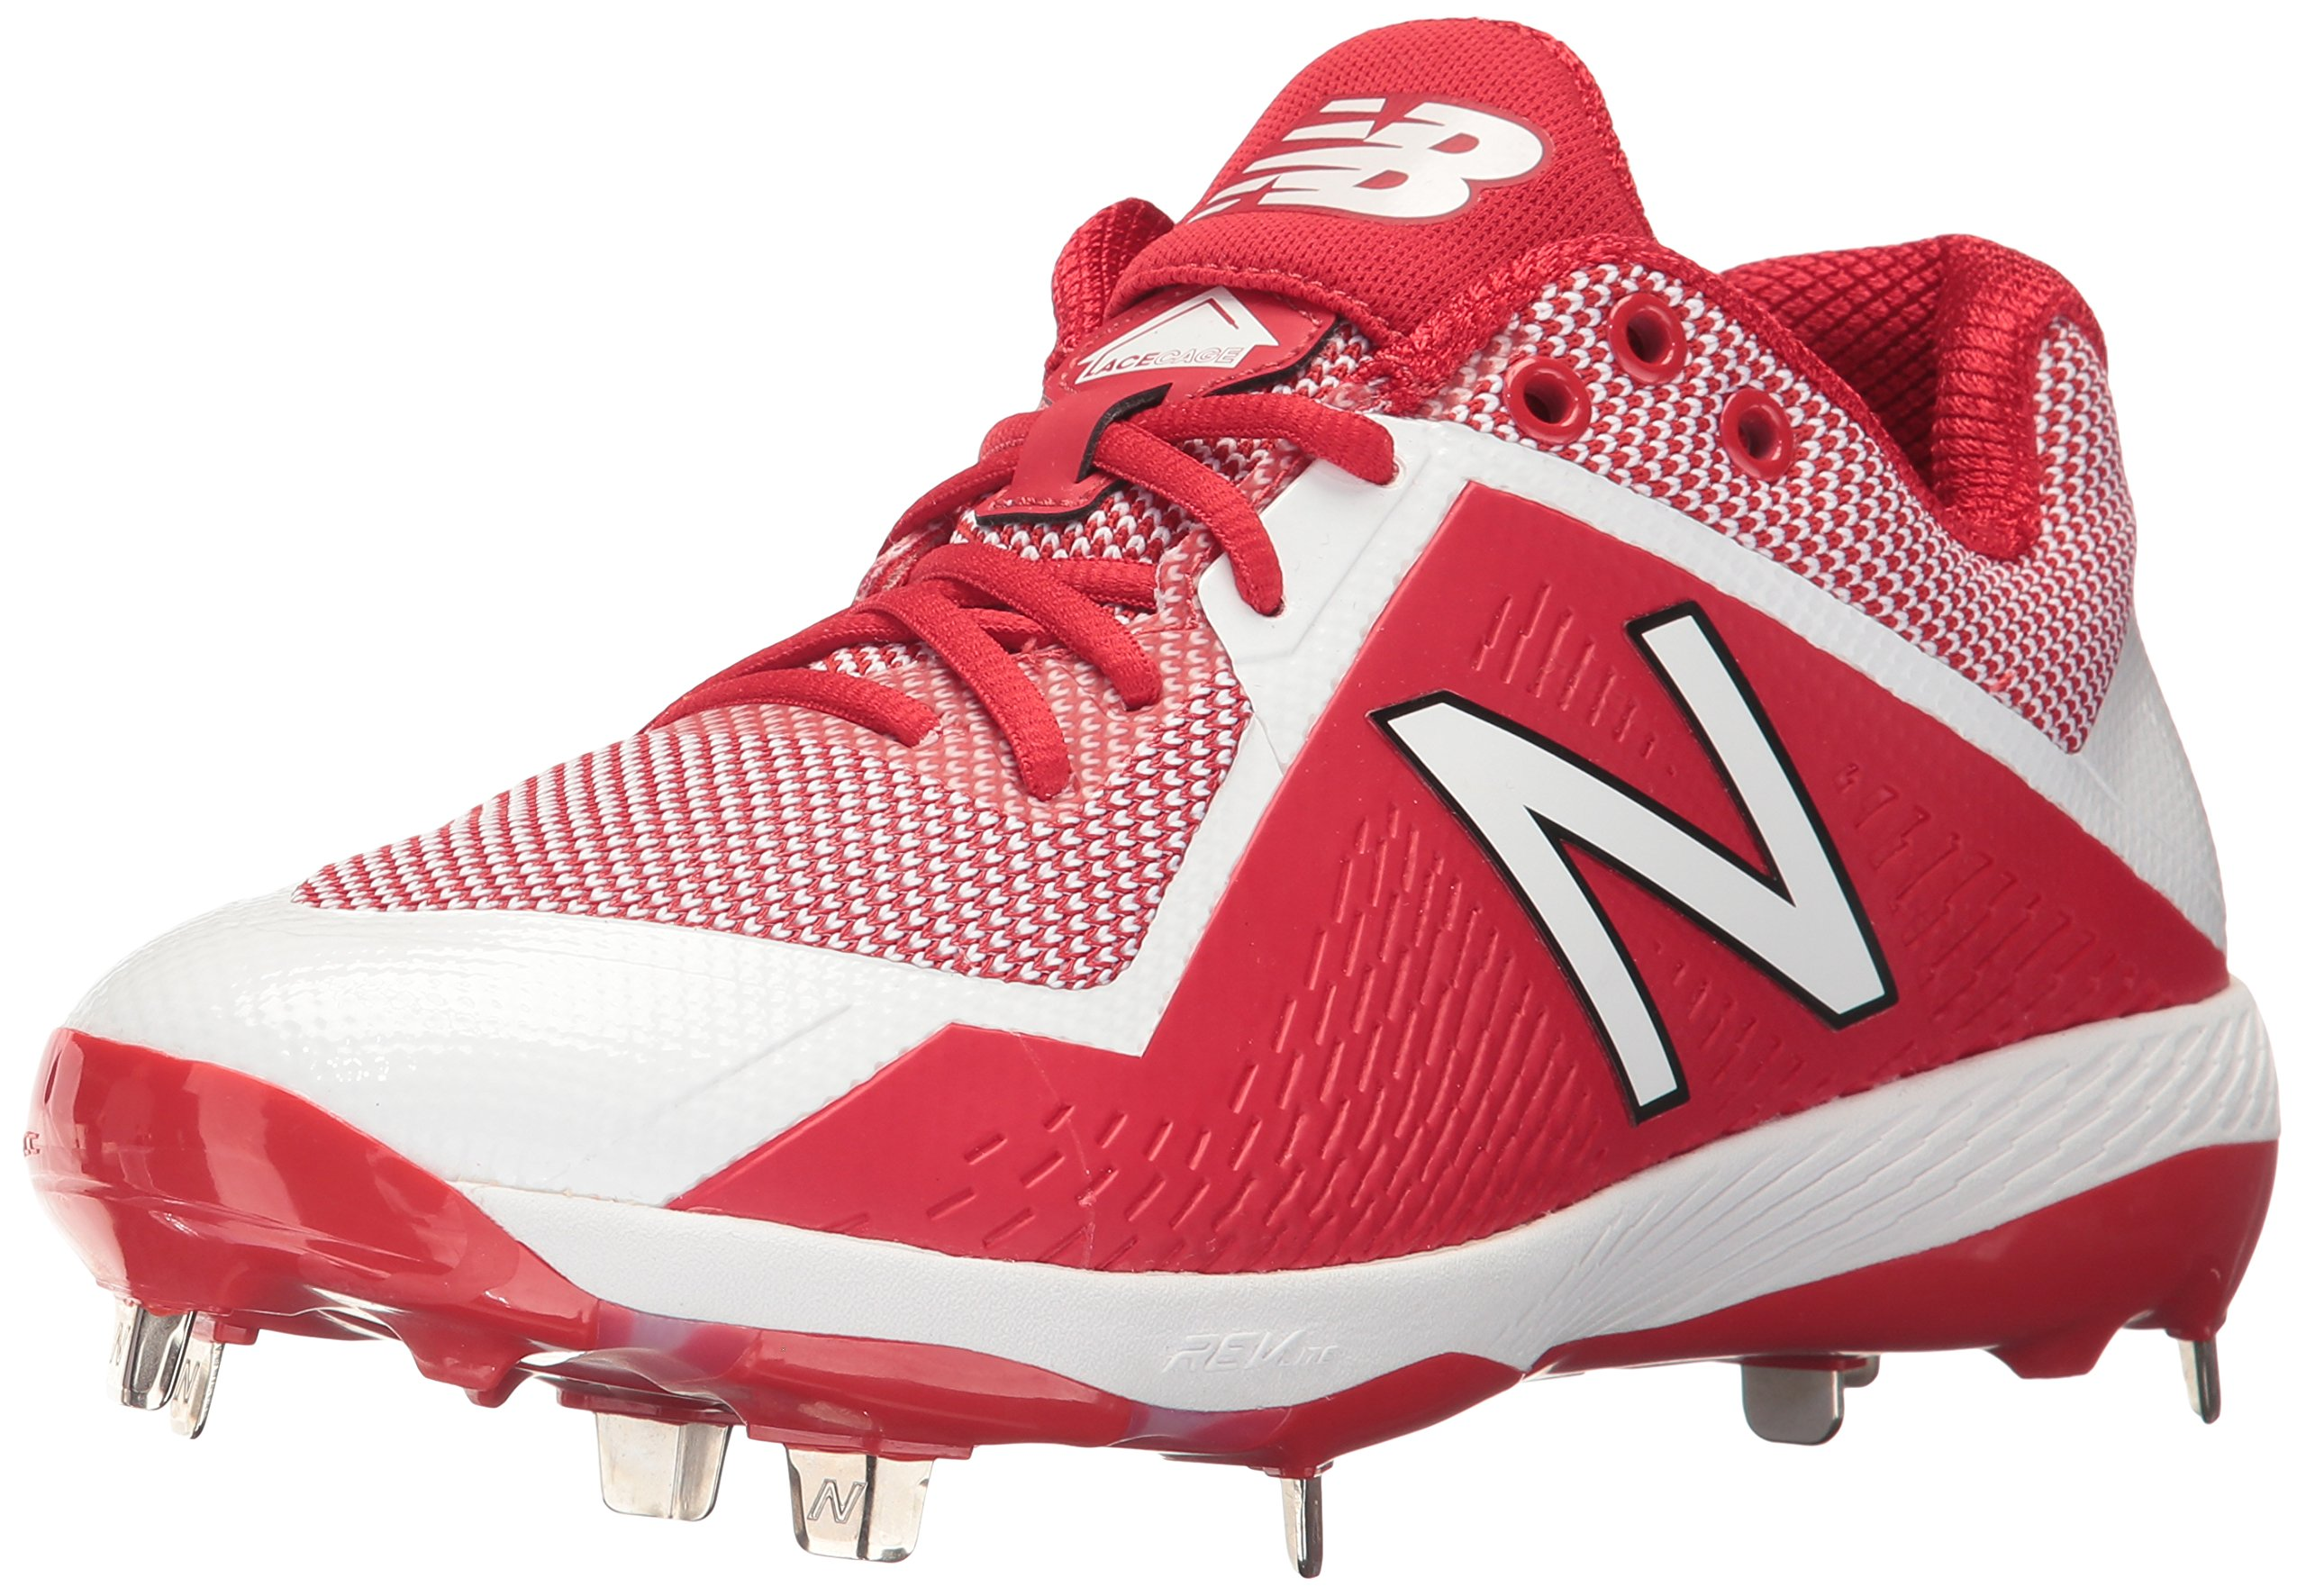 New Balance Men's L4040v4 Metal Baseball Shoe, Red/White, 10 D US by New Balance